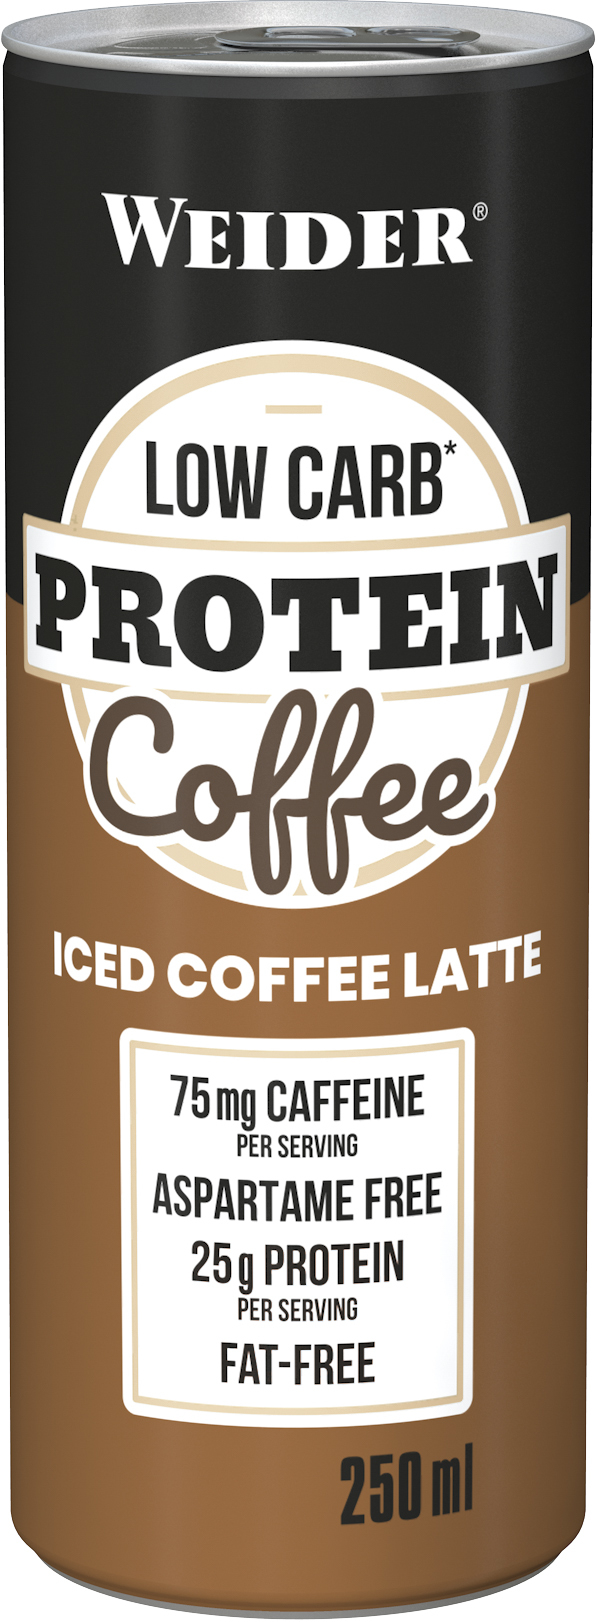 WEIDER LOW CARB Protein Coffee Latte, 250ml